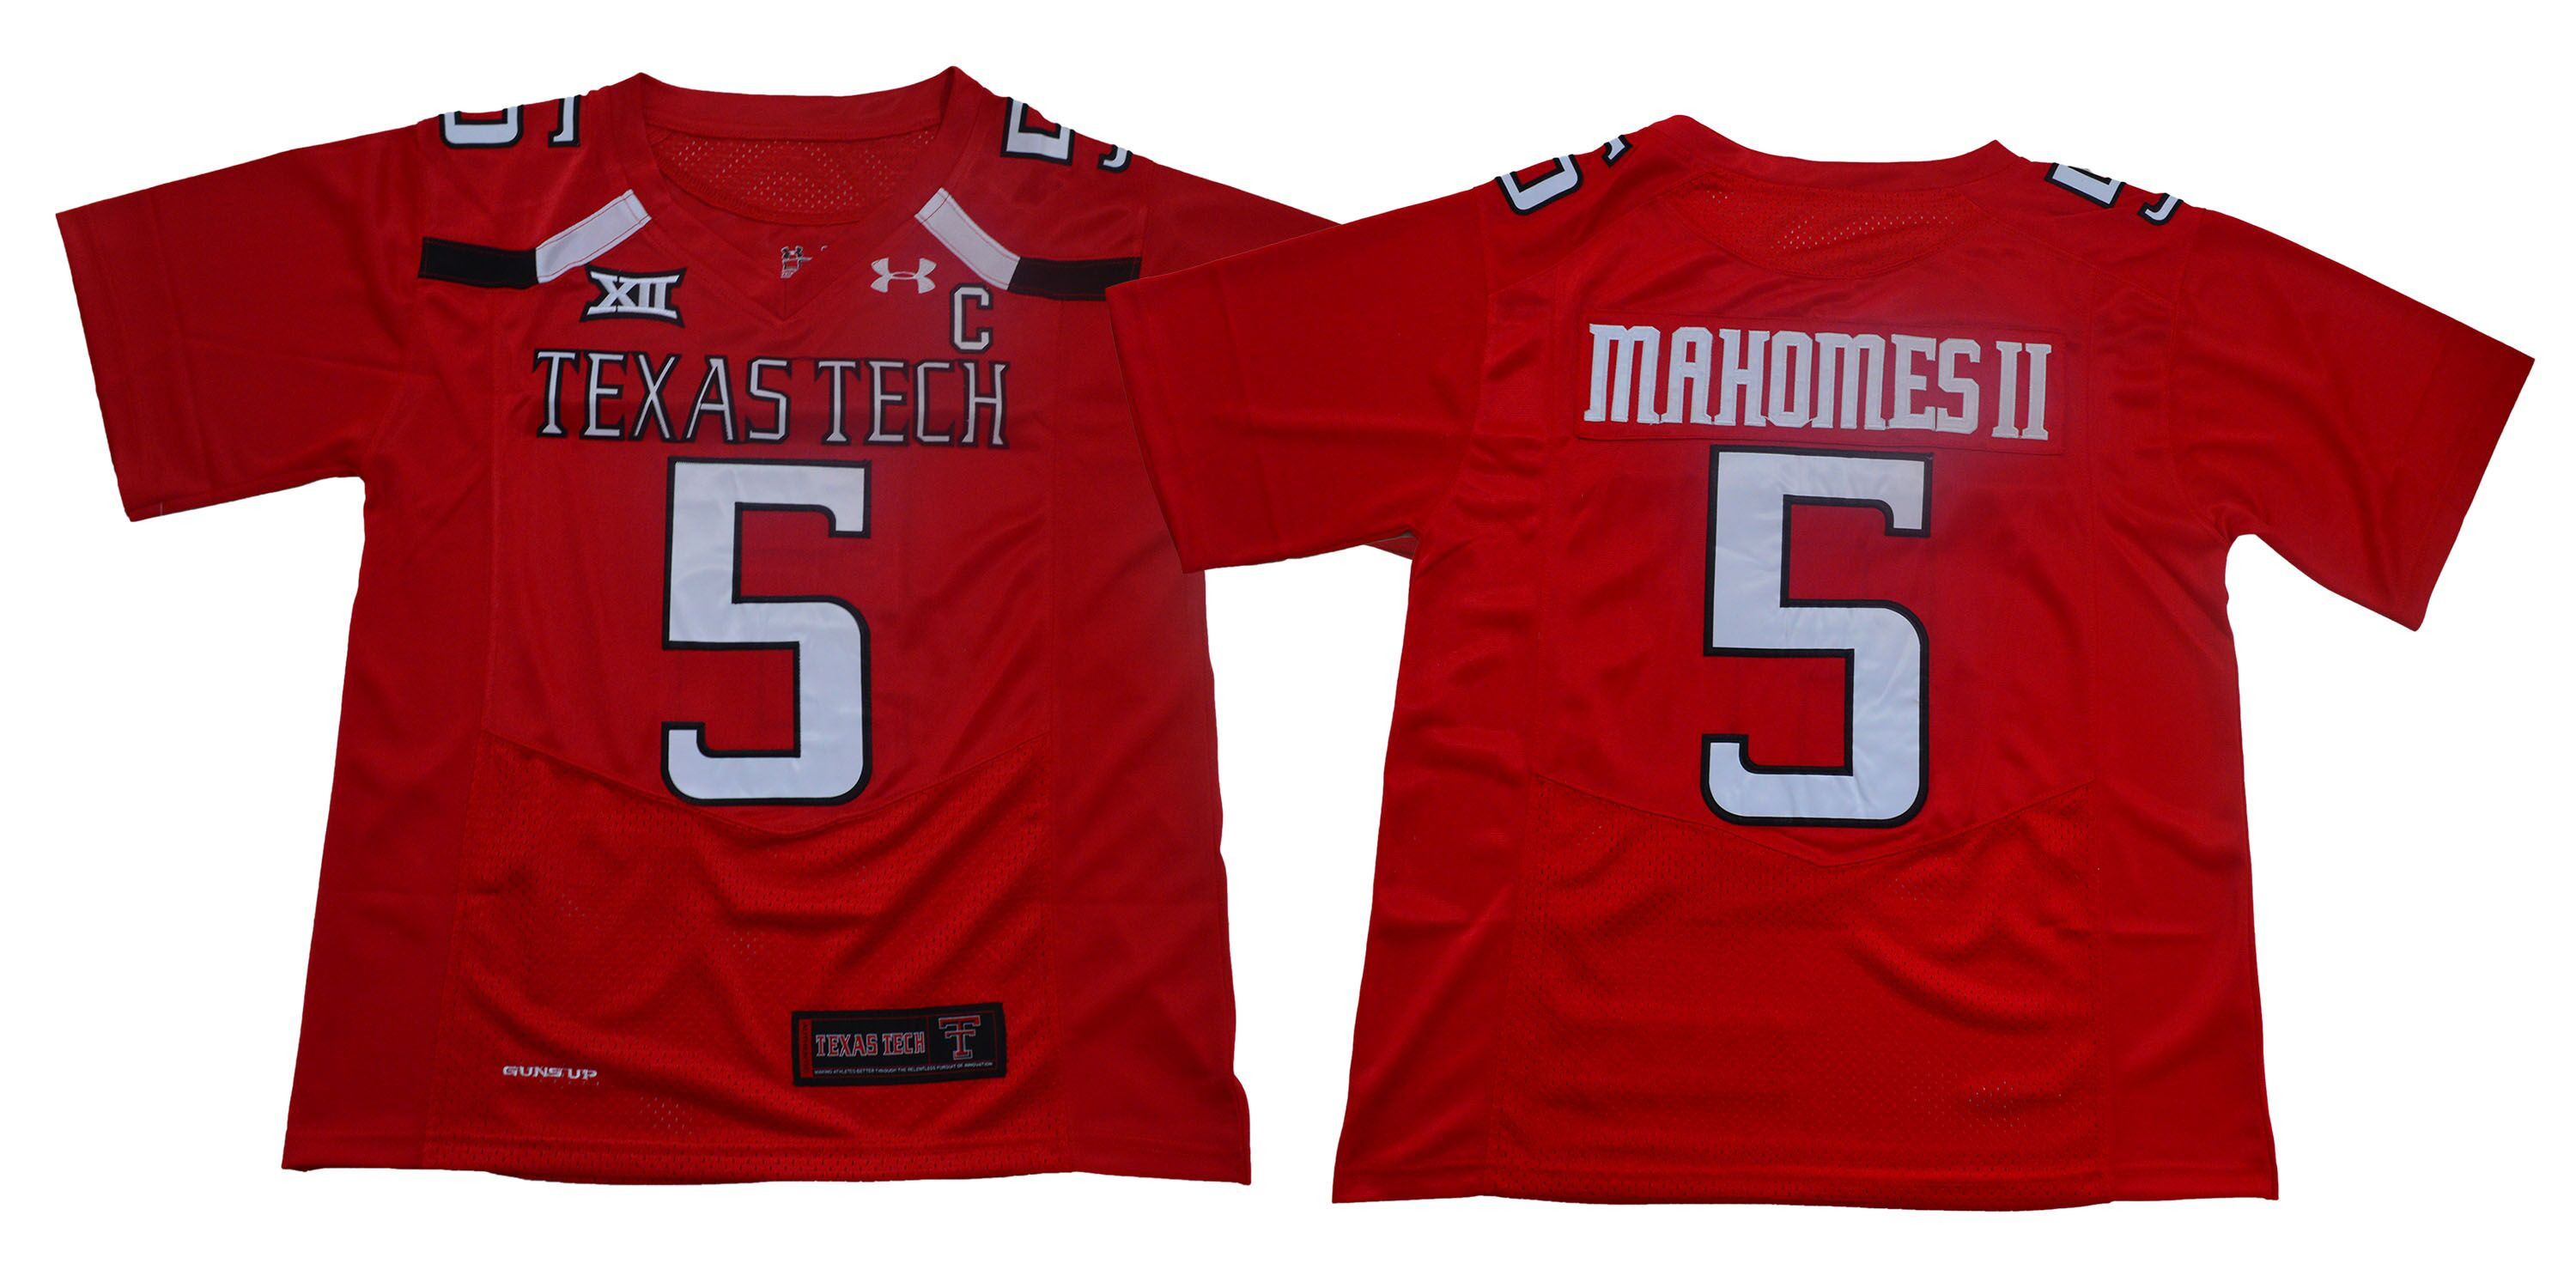 Texas Tech Red Raiders 5 Patrick Mahomes II Black Red C Patch College Football Jersey